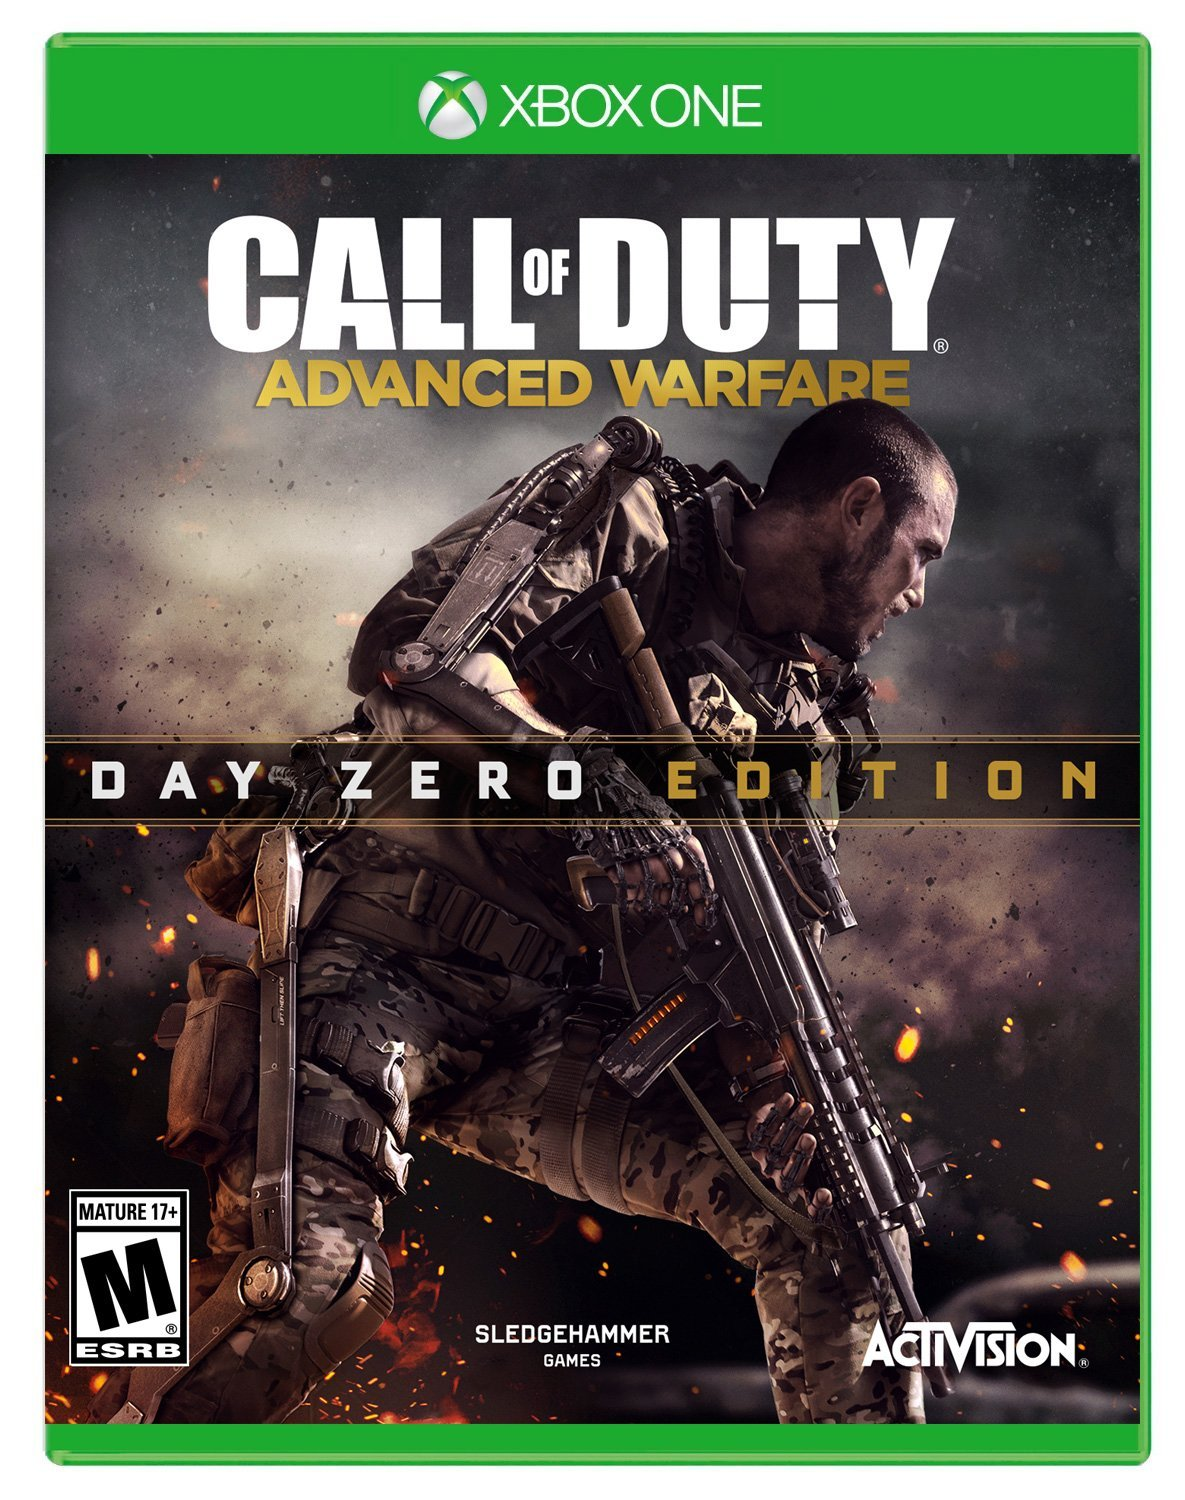 COD Call of Duty Advanced Warfare for XBOX ONE US